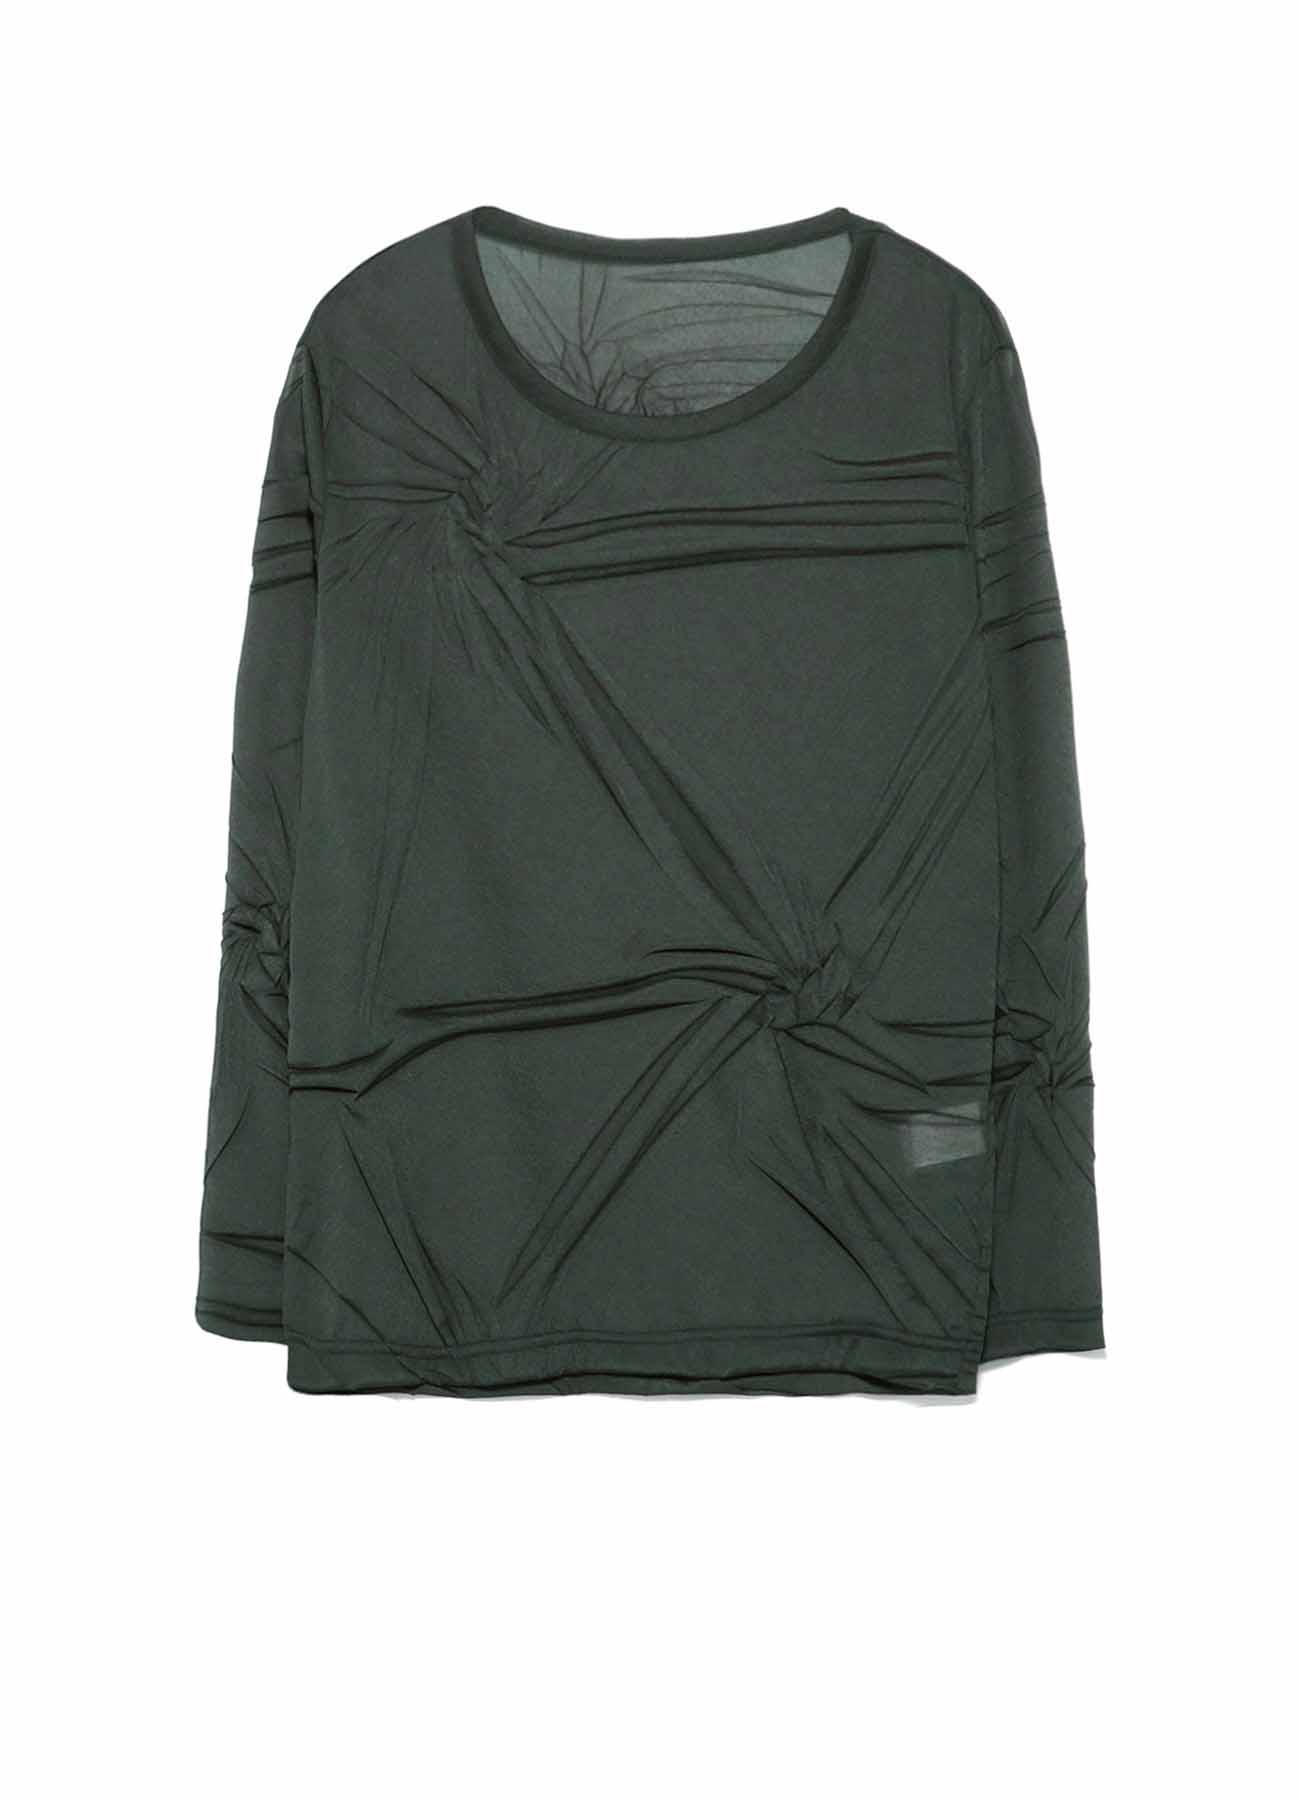 RANDOM WRINKLE PLEATS ROUND NECK LONG SLEEVE